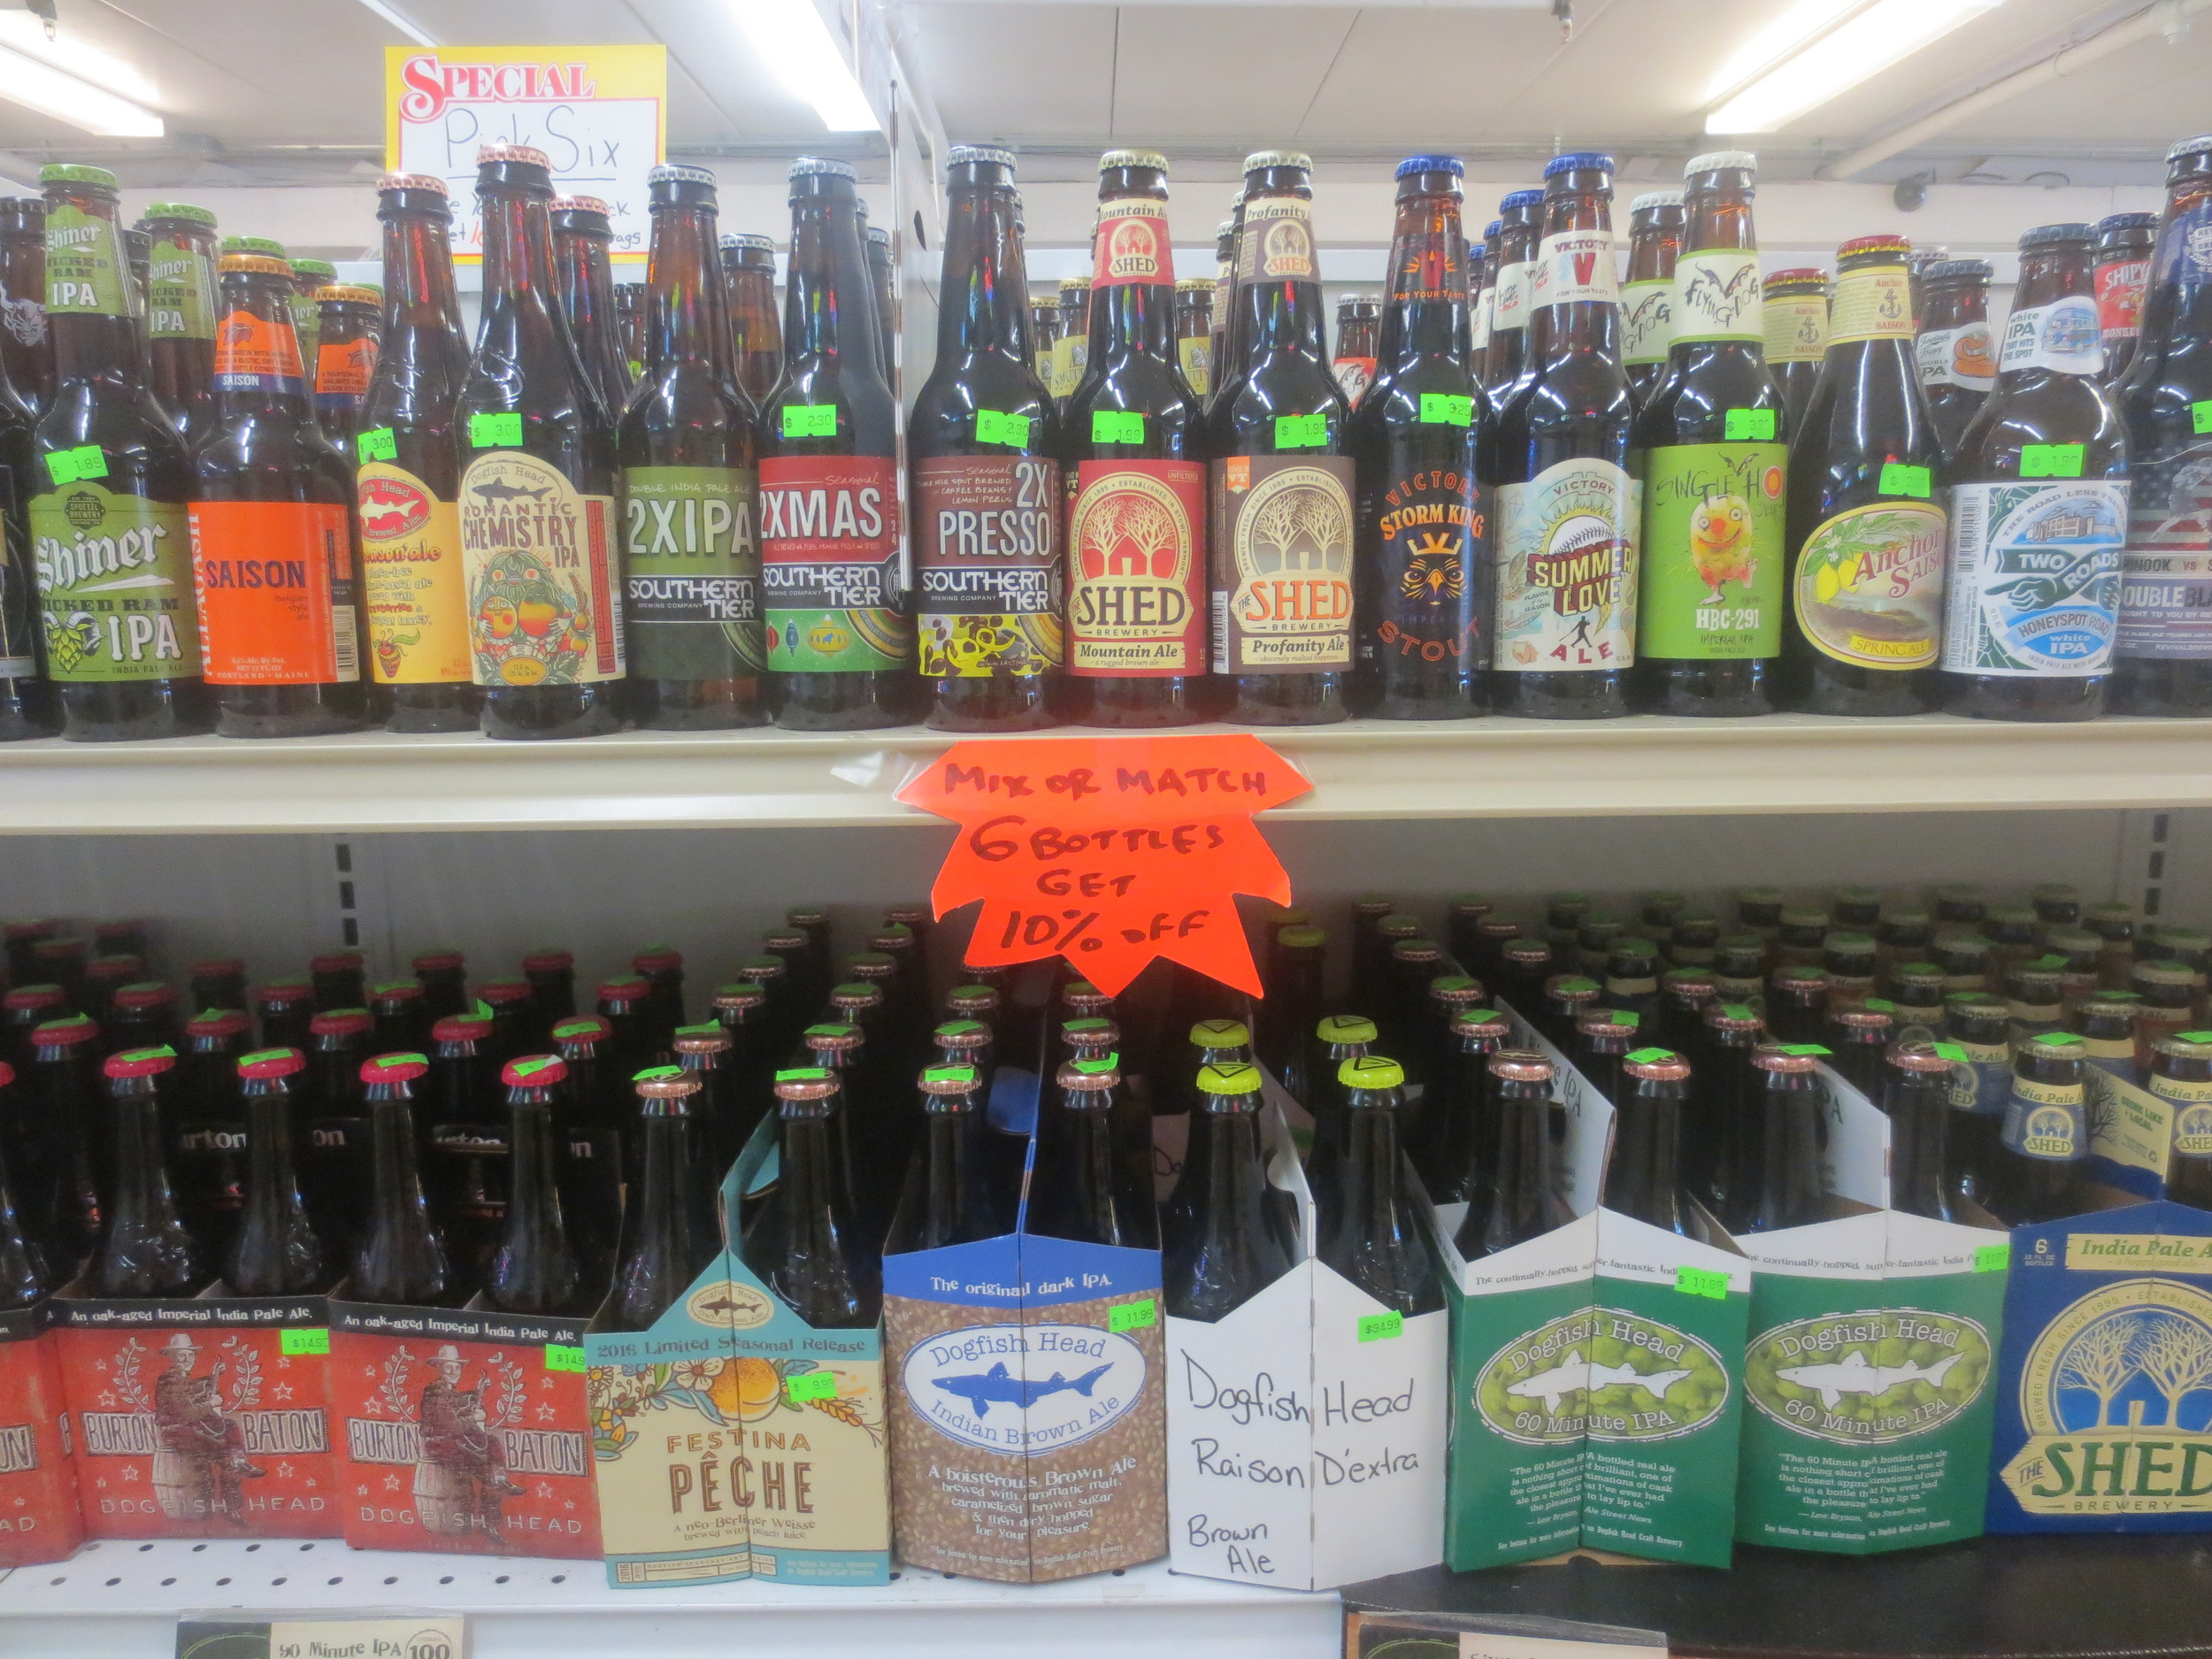 Come to Airport Liquors on Airport Road for the best selection of beer, wine and spirits at the lowest prices ~ for your summer celebrations, and always.